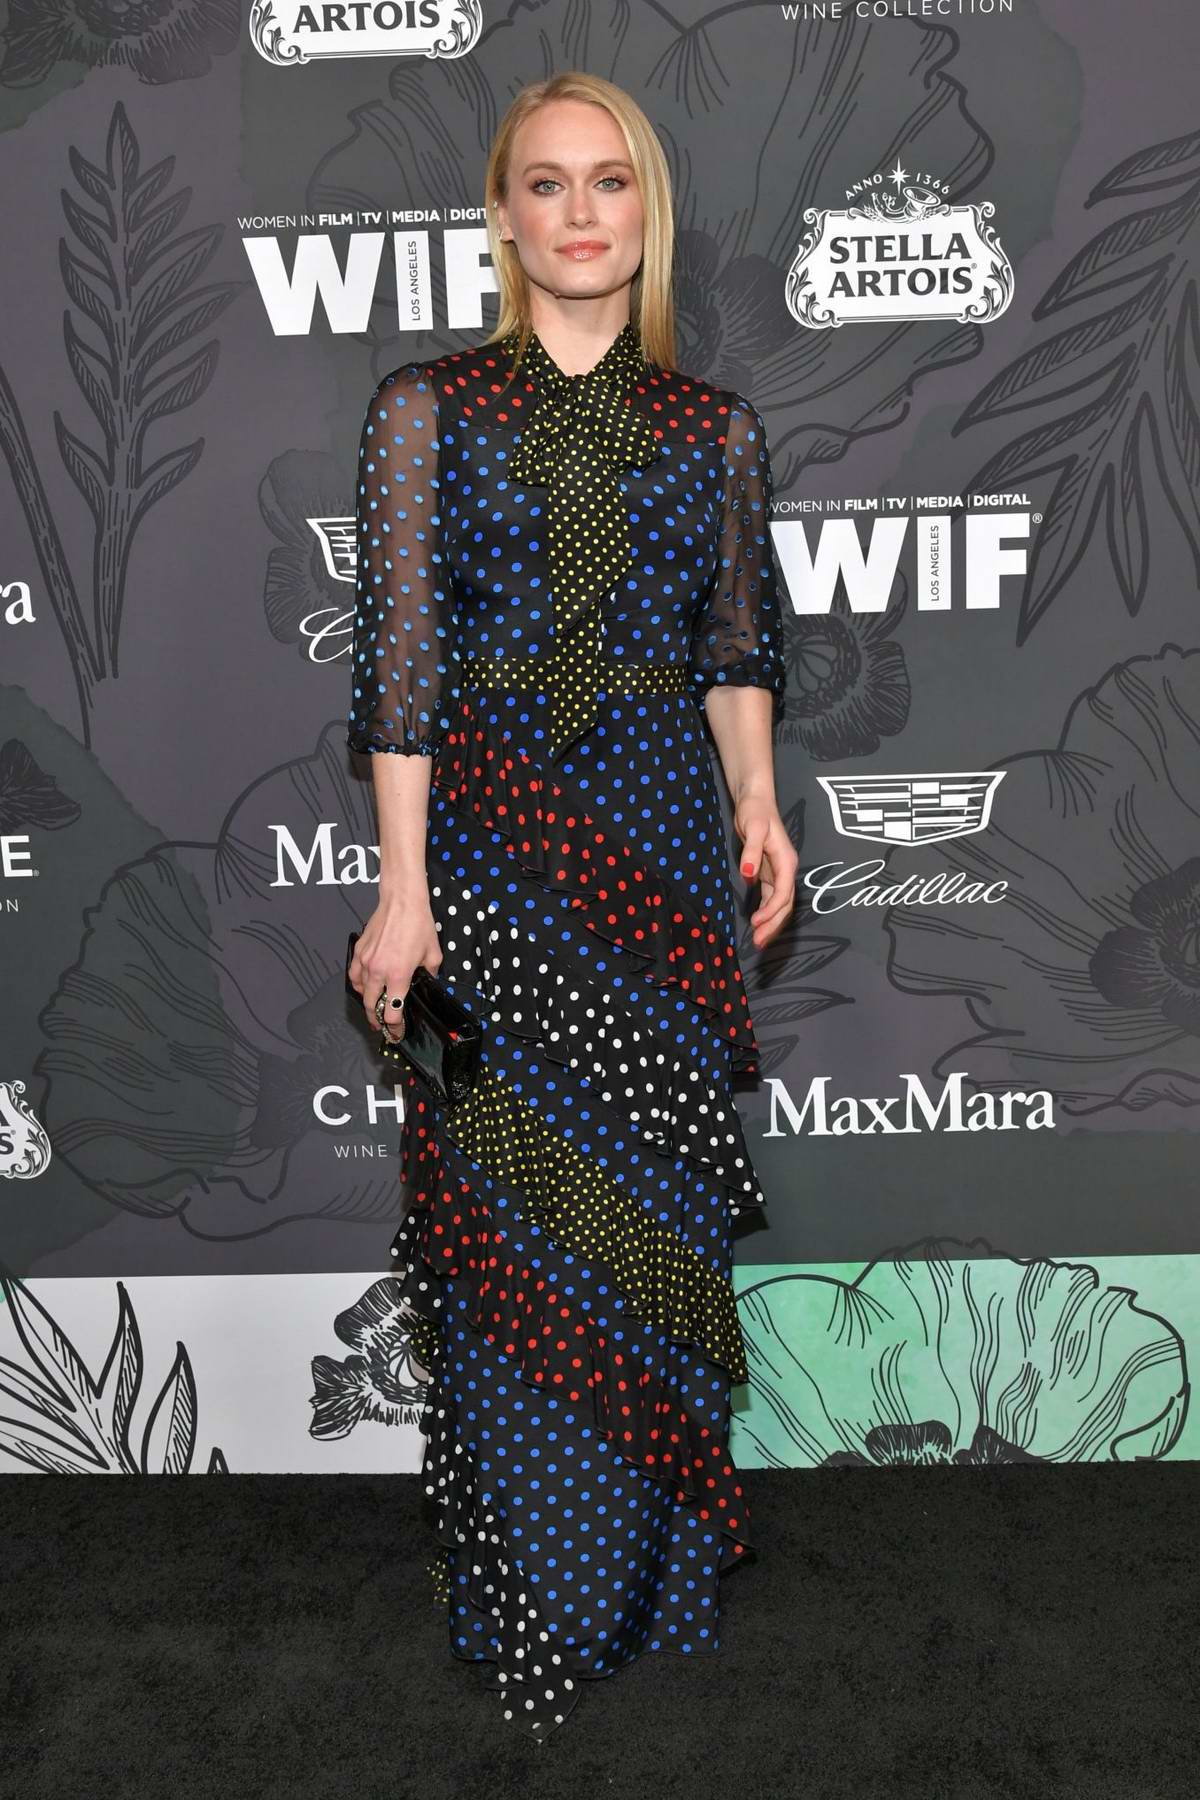 Leven Rambin attends the 12th Annual Women In Film Oscar Party in Beverly Hills, Los Angeles